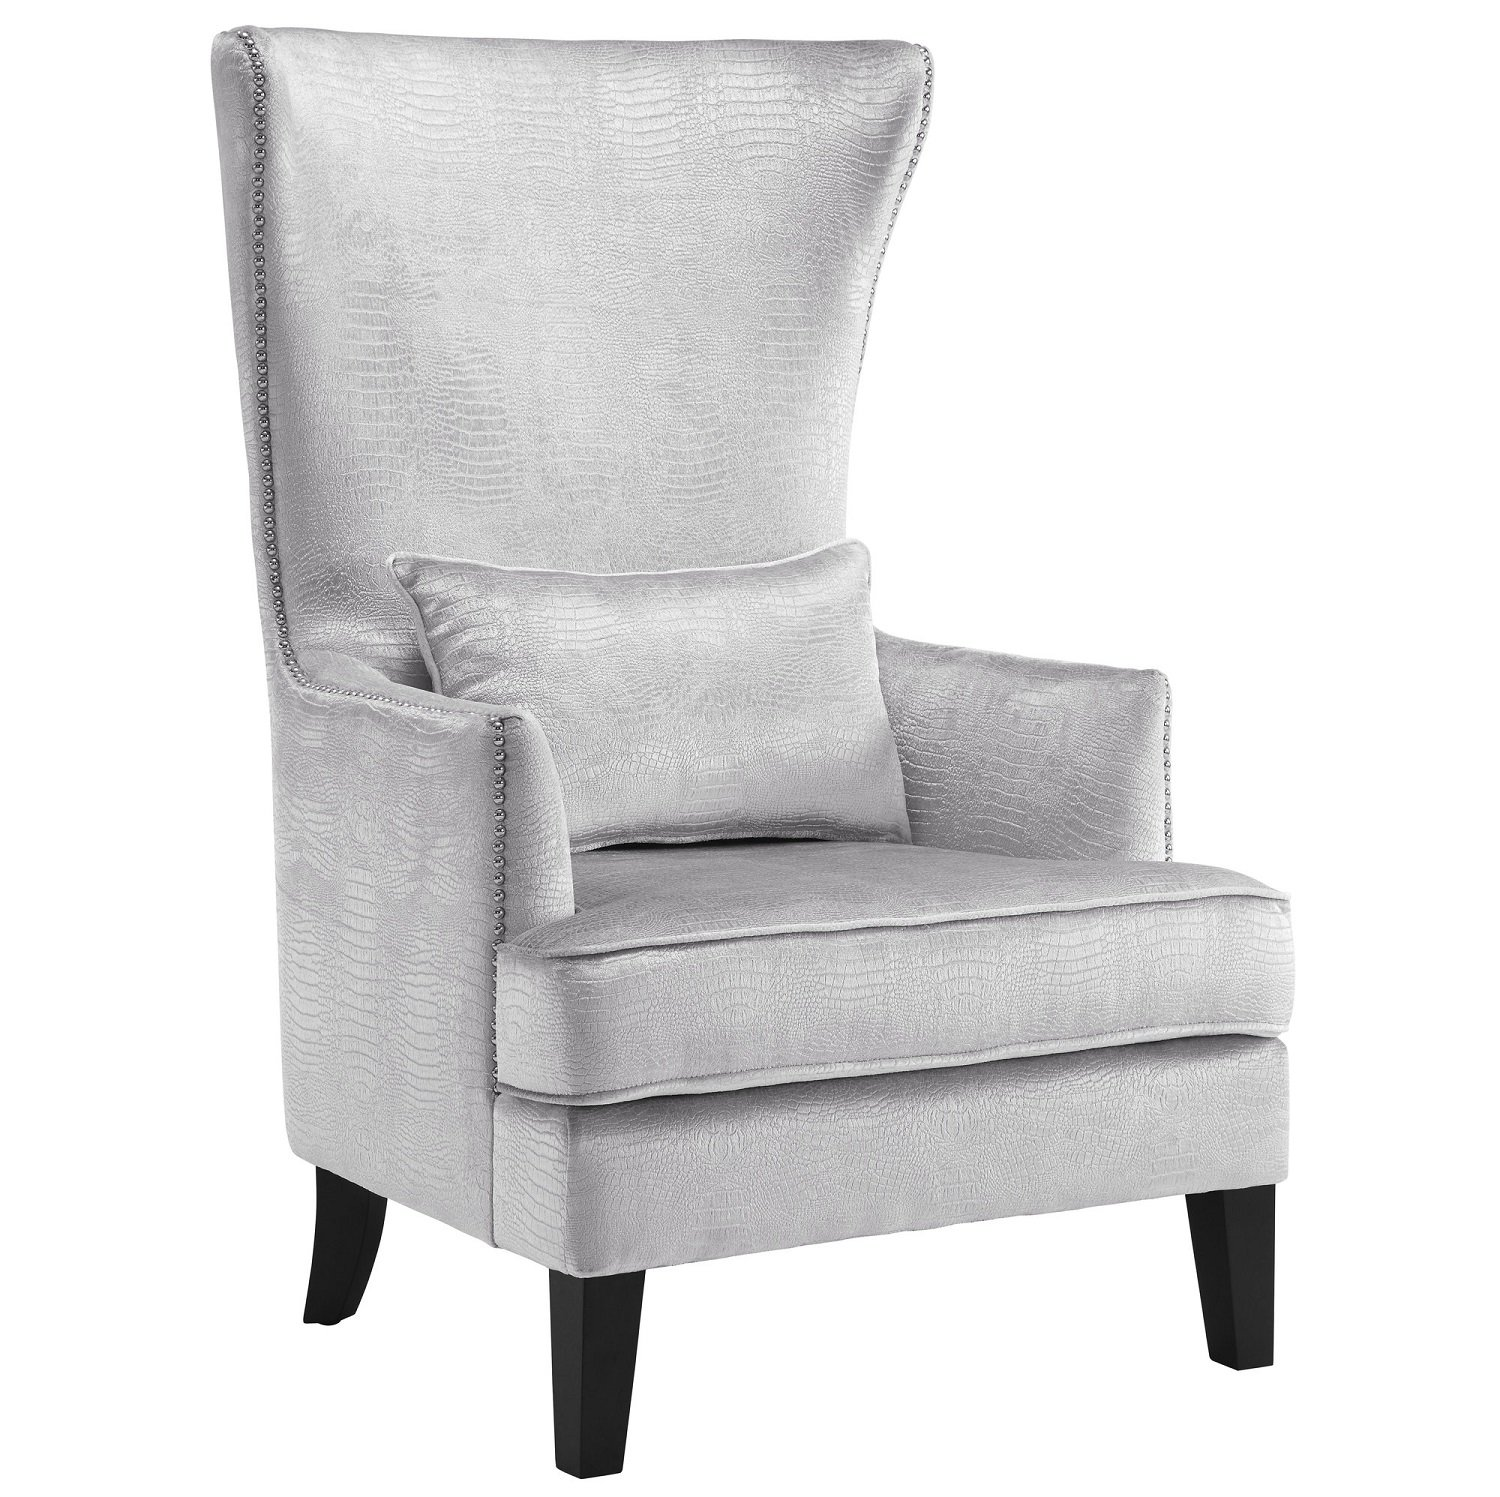 Enjoyable Tov Furniture The Bristol Collection Contemporary Velvet Upholstered Tall Living Room Parlor Chair With Nailhead Trim Silver Croc Beatyapartments Chair Design Images Beatyapartmentscom